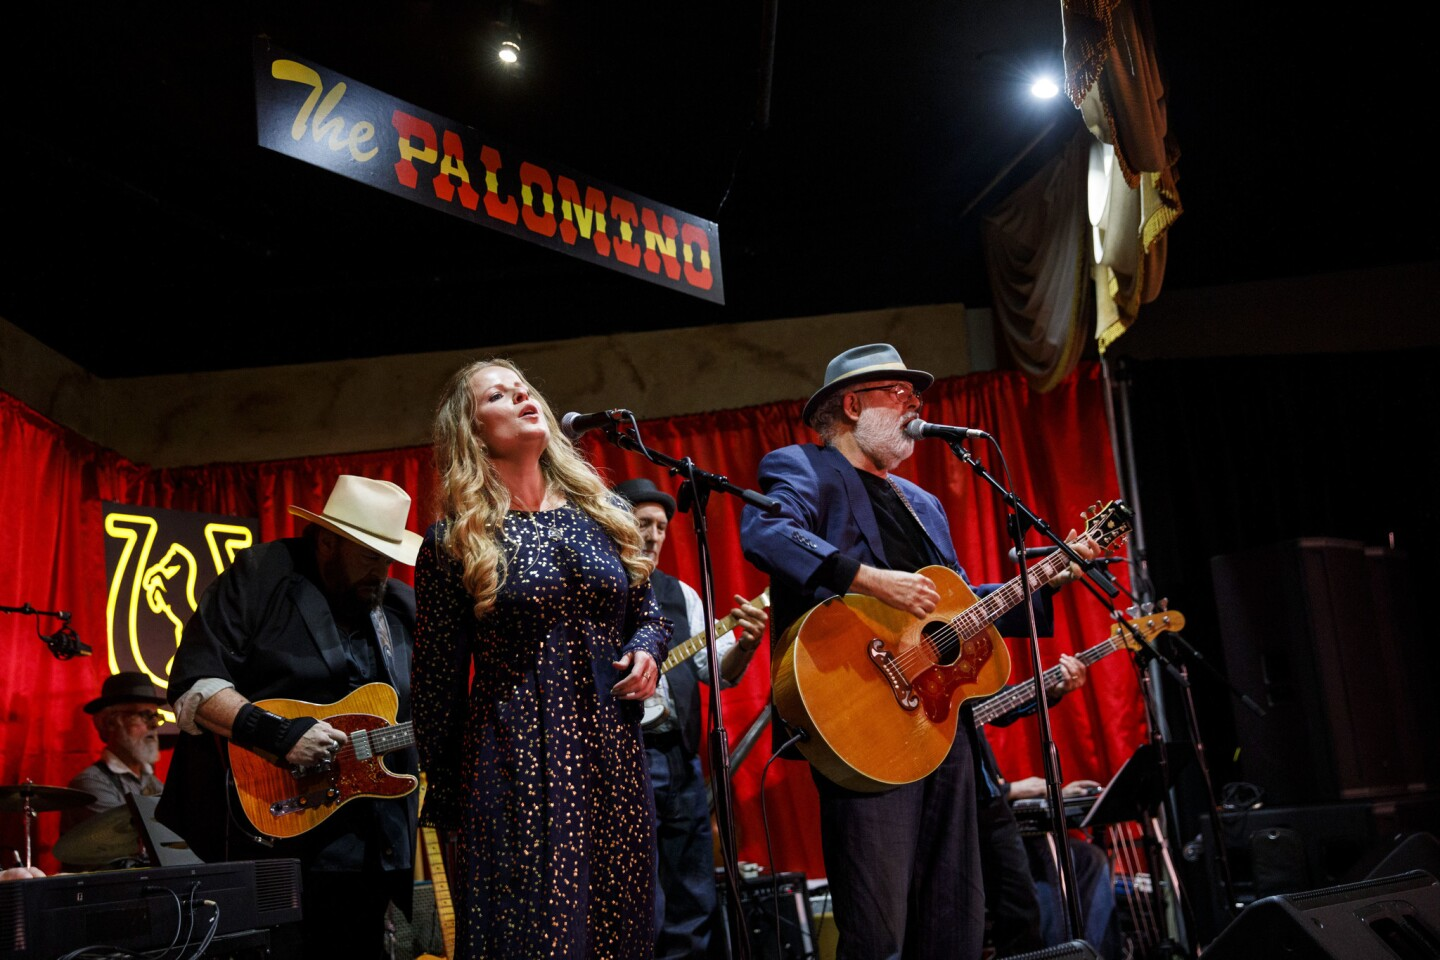 Music and dance at the Palomino Club